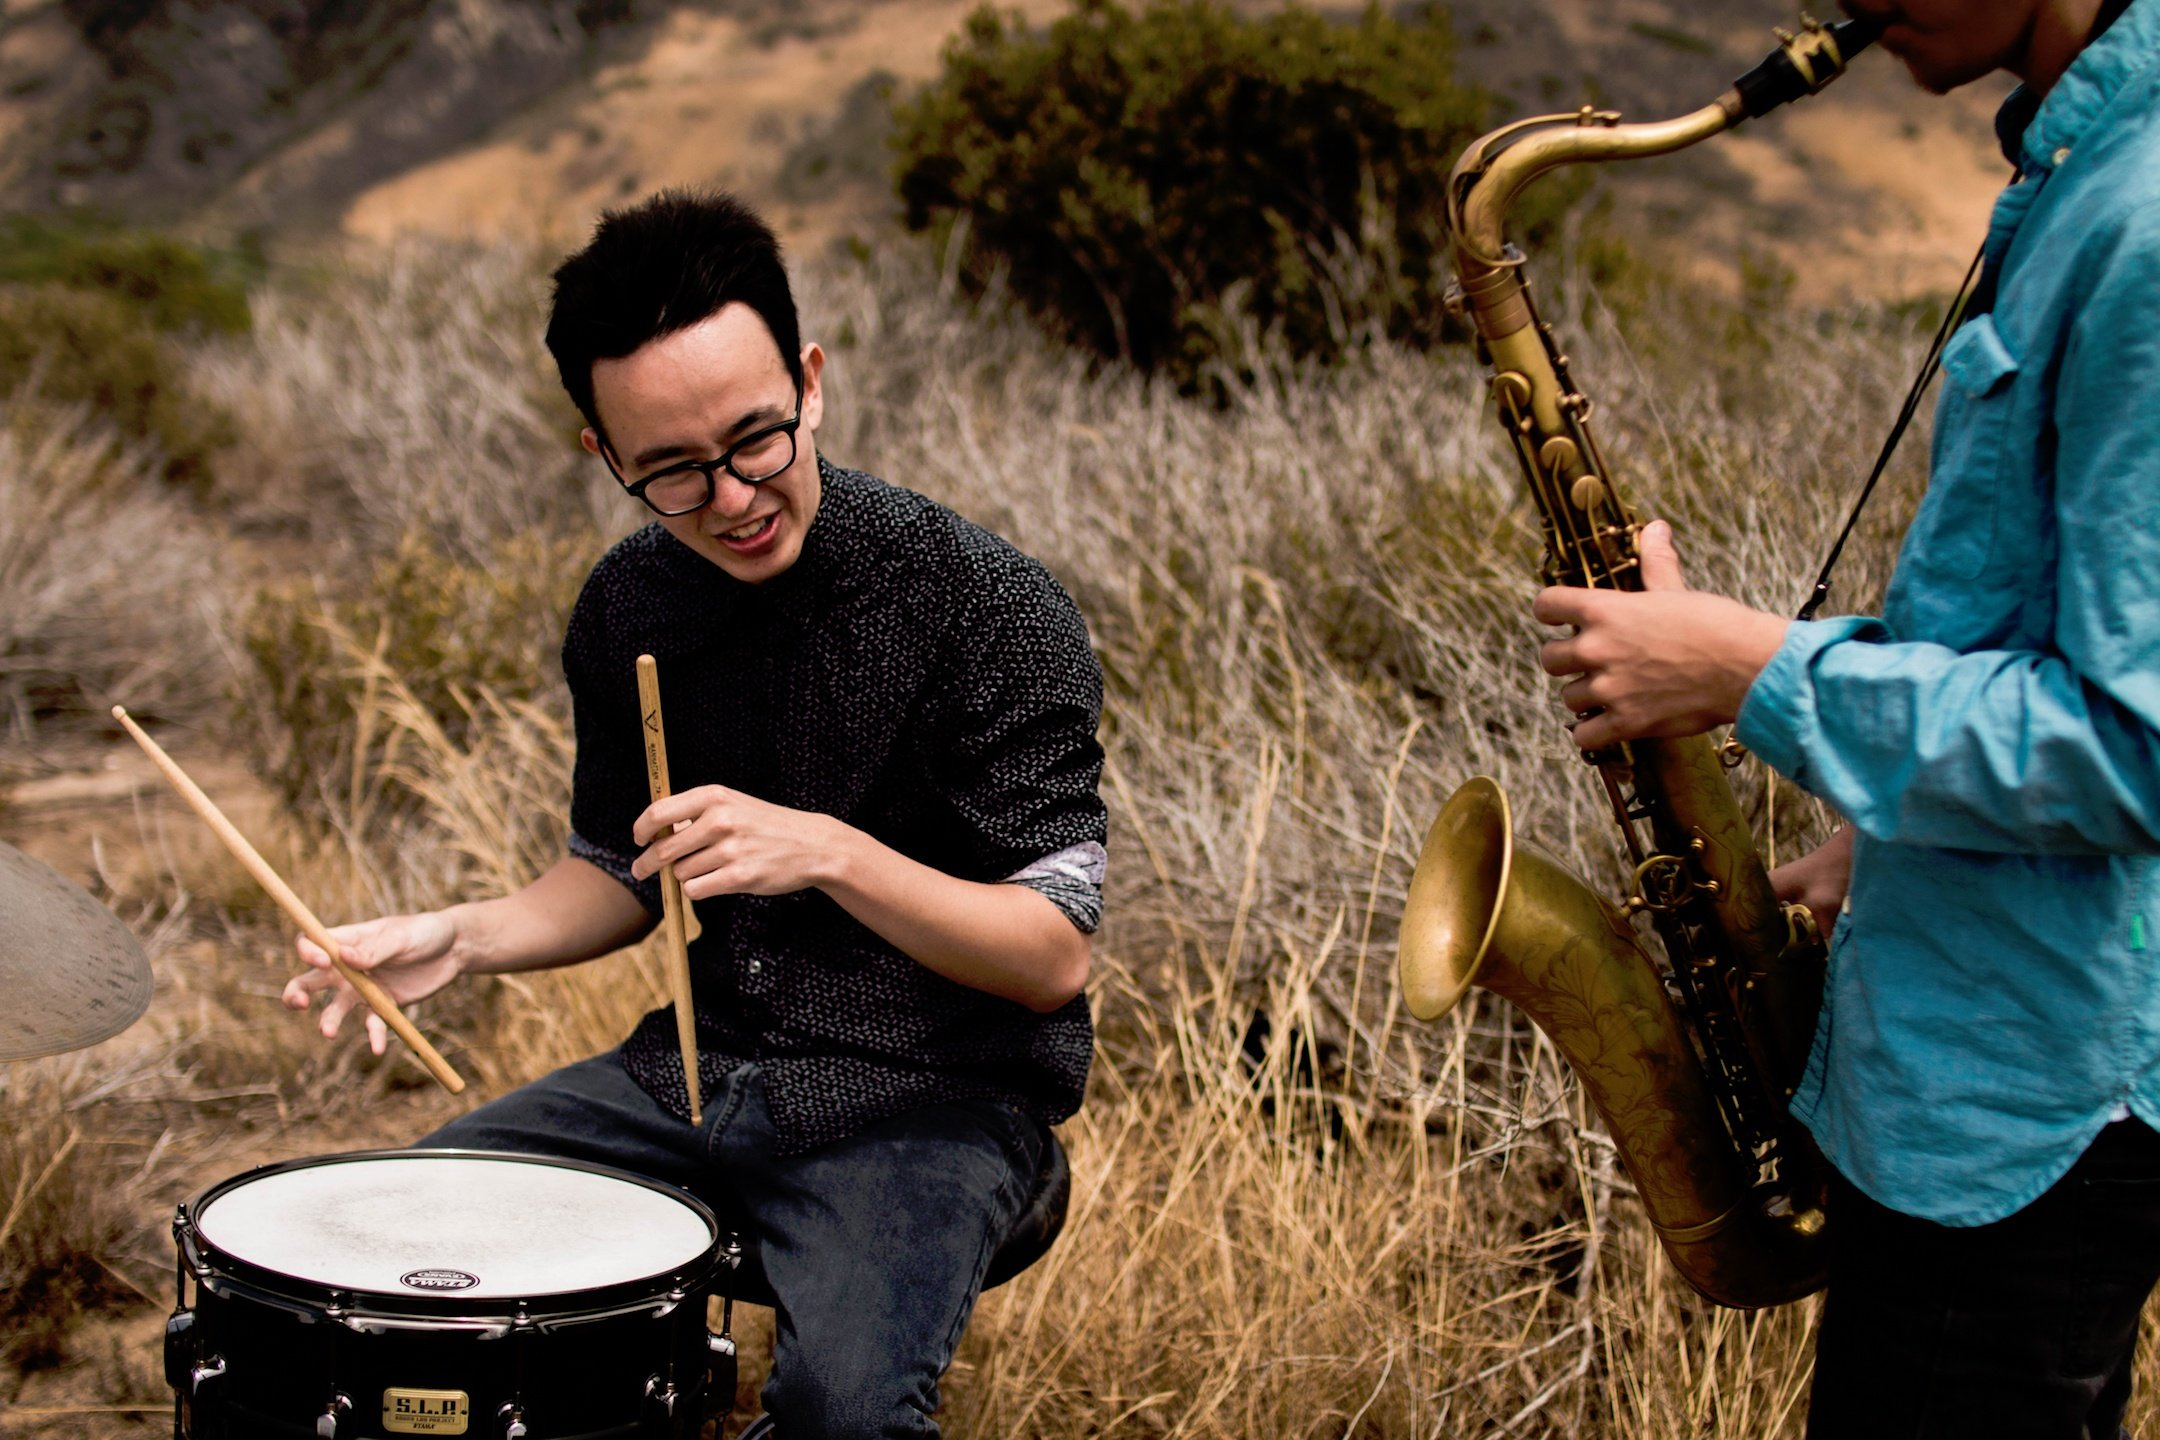 In a field outdoors person wearing glasses drums on the left and someone plays saxaphone on the righ.jpg